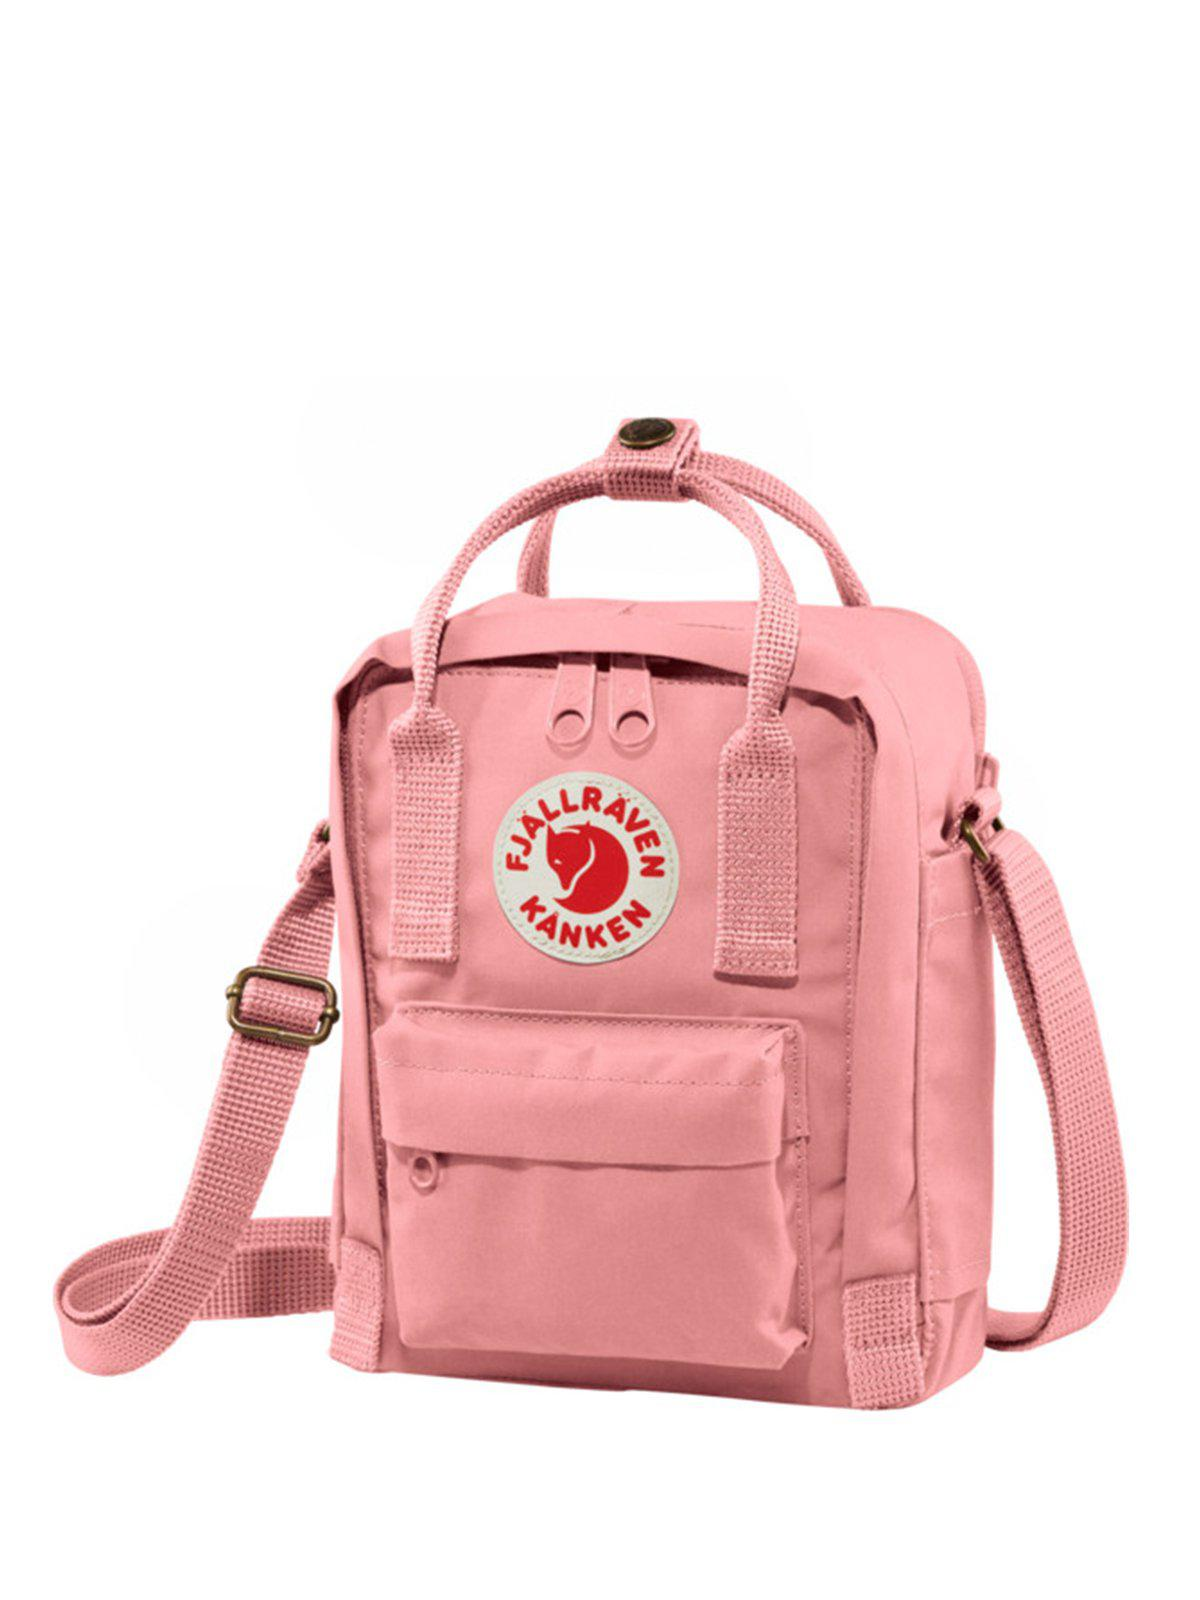 Fjallraven Kanken Sling Bag Pink - MORE by Morello - Indonesia